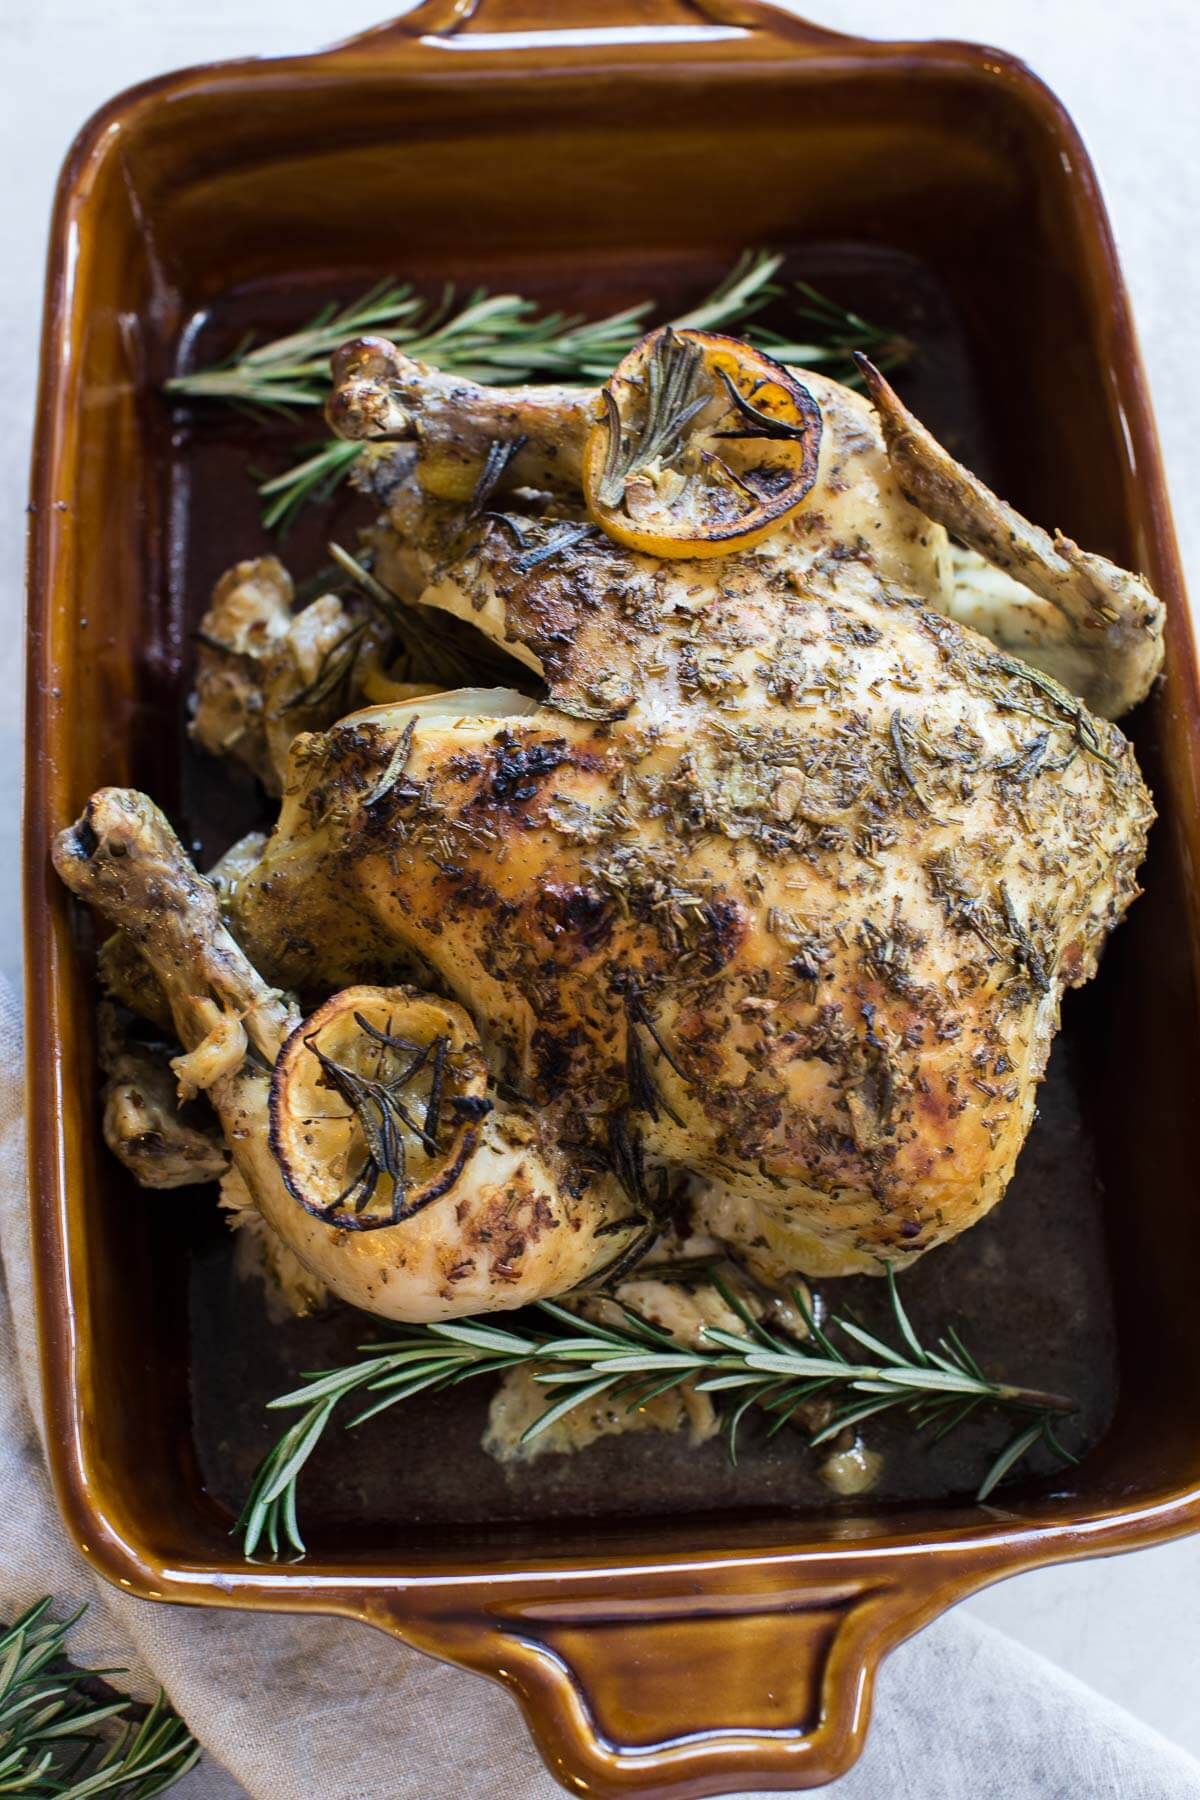 overhead shot of cooked whole chicken with rosemary sprigs, fresh herbs and lemon slices